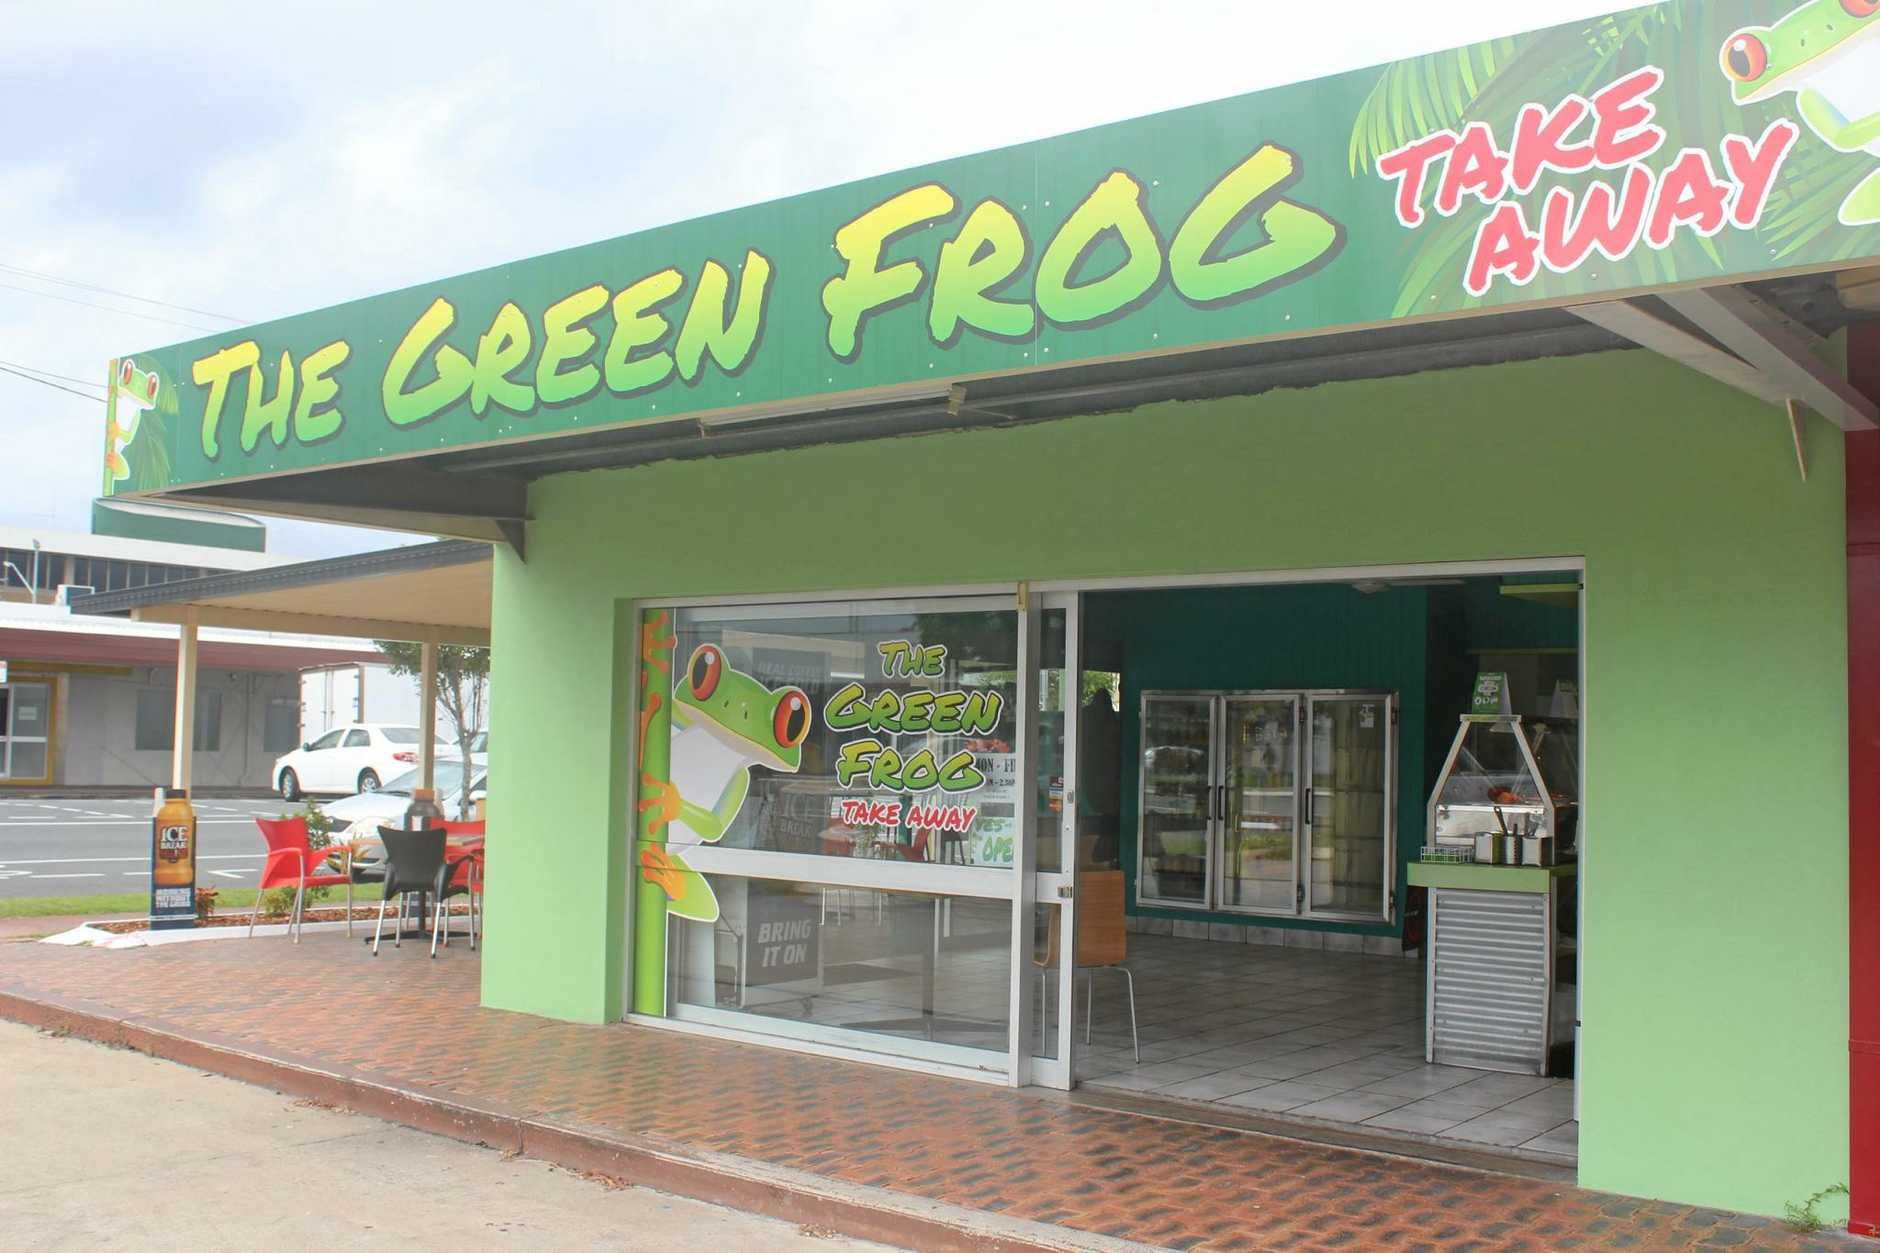 The Green Frog Takeaway store is located on Gregory and Alfred Sts.